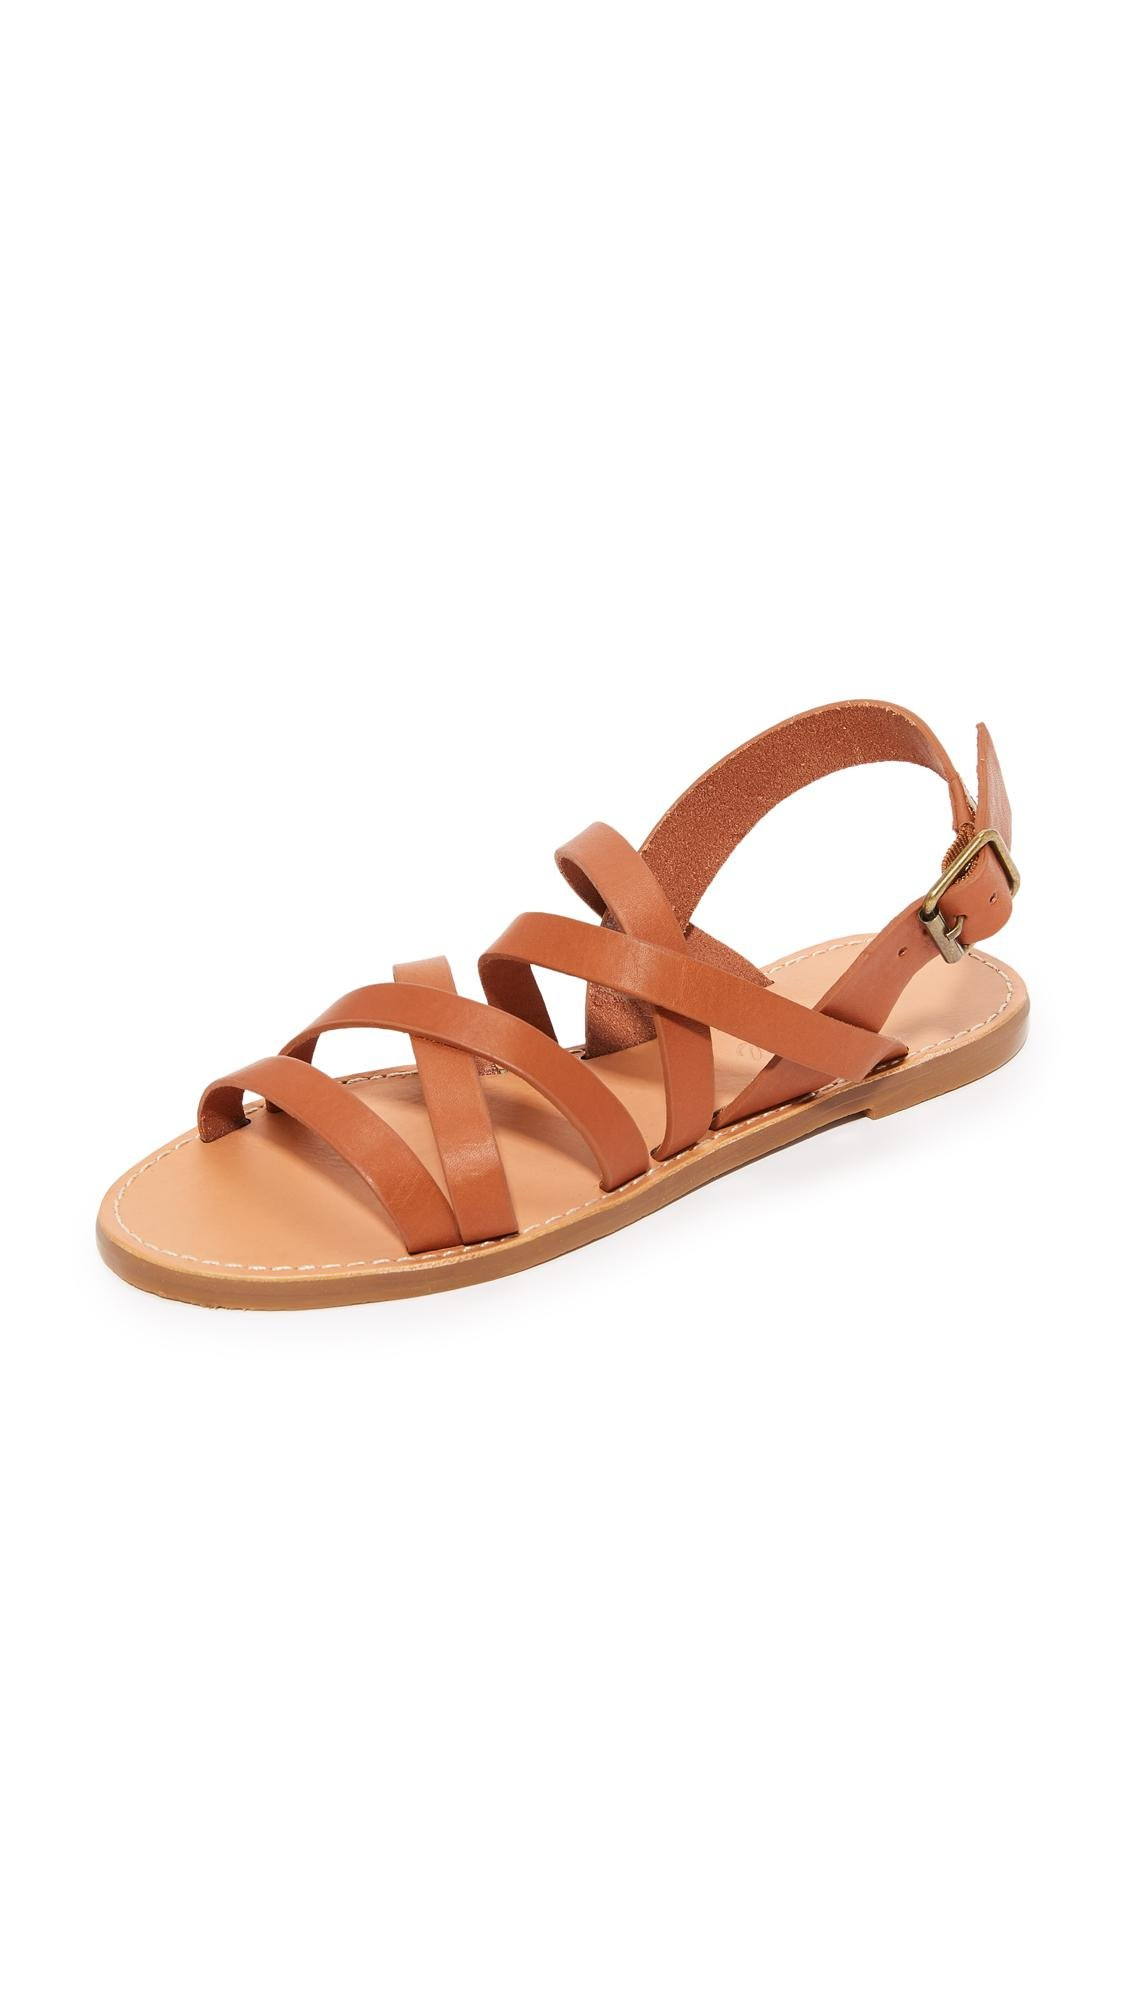 99922c1bb953d4 Lyst - Madewell Boardwalk Multi Strap Sandals in Brown